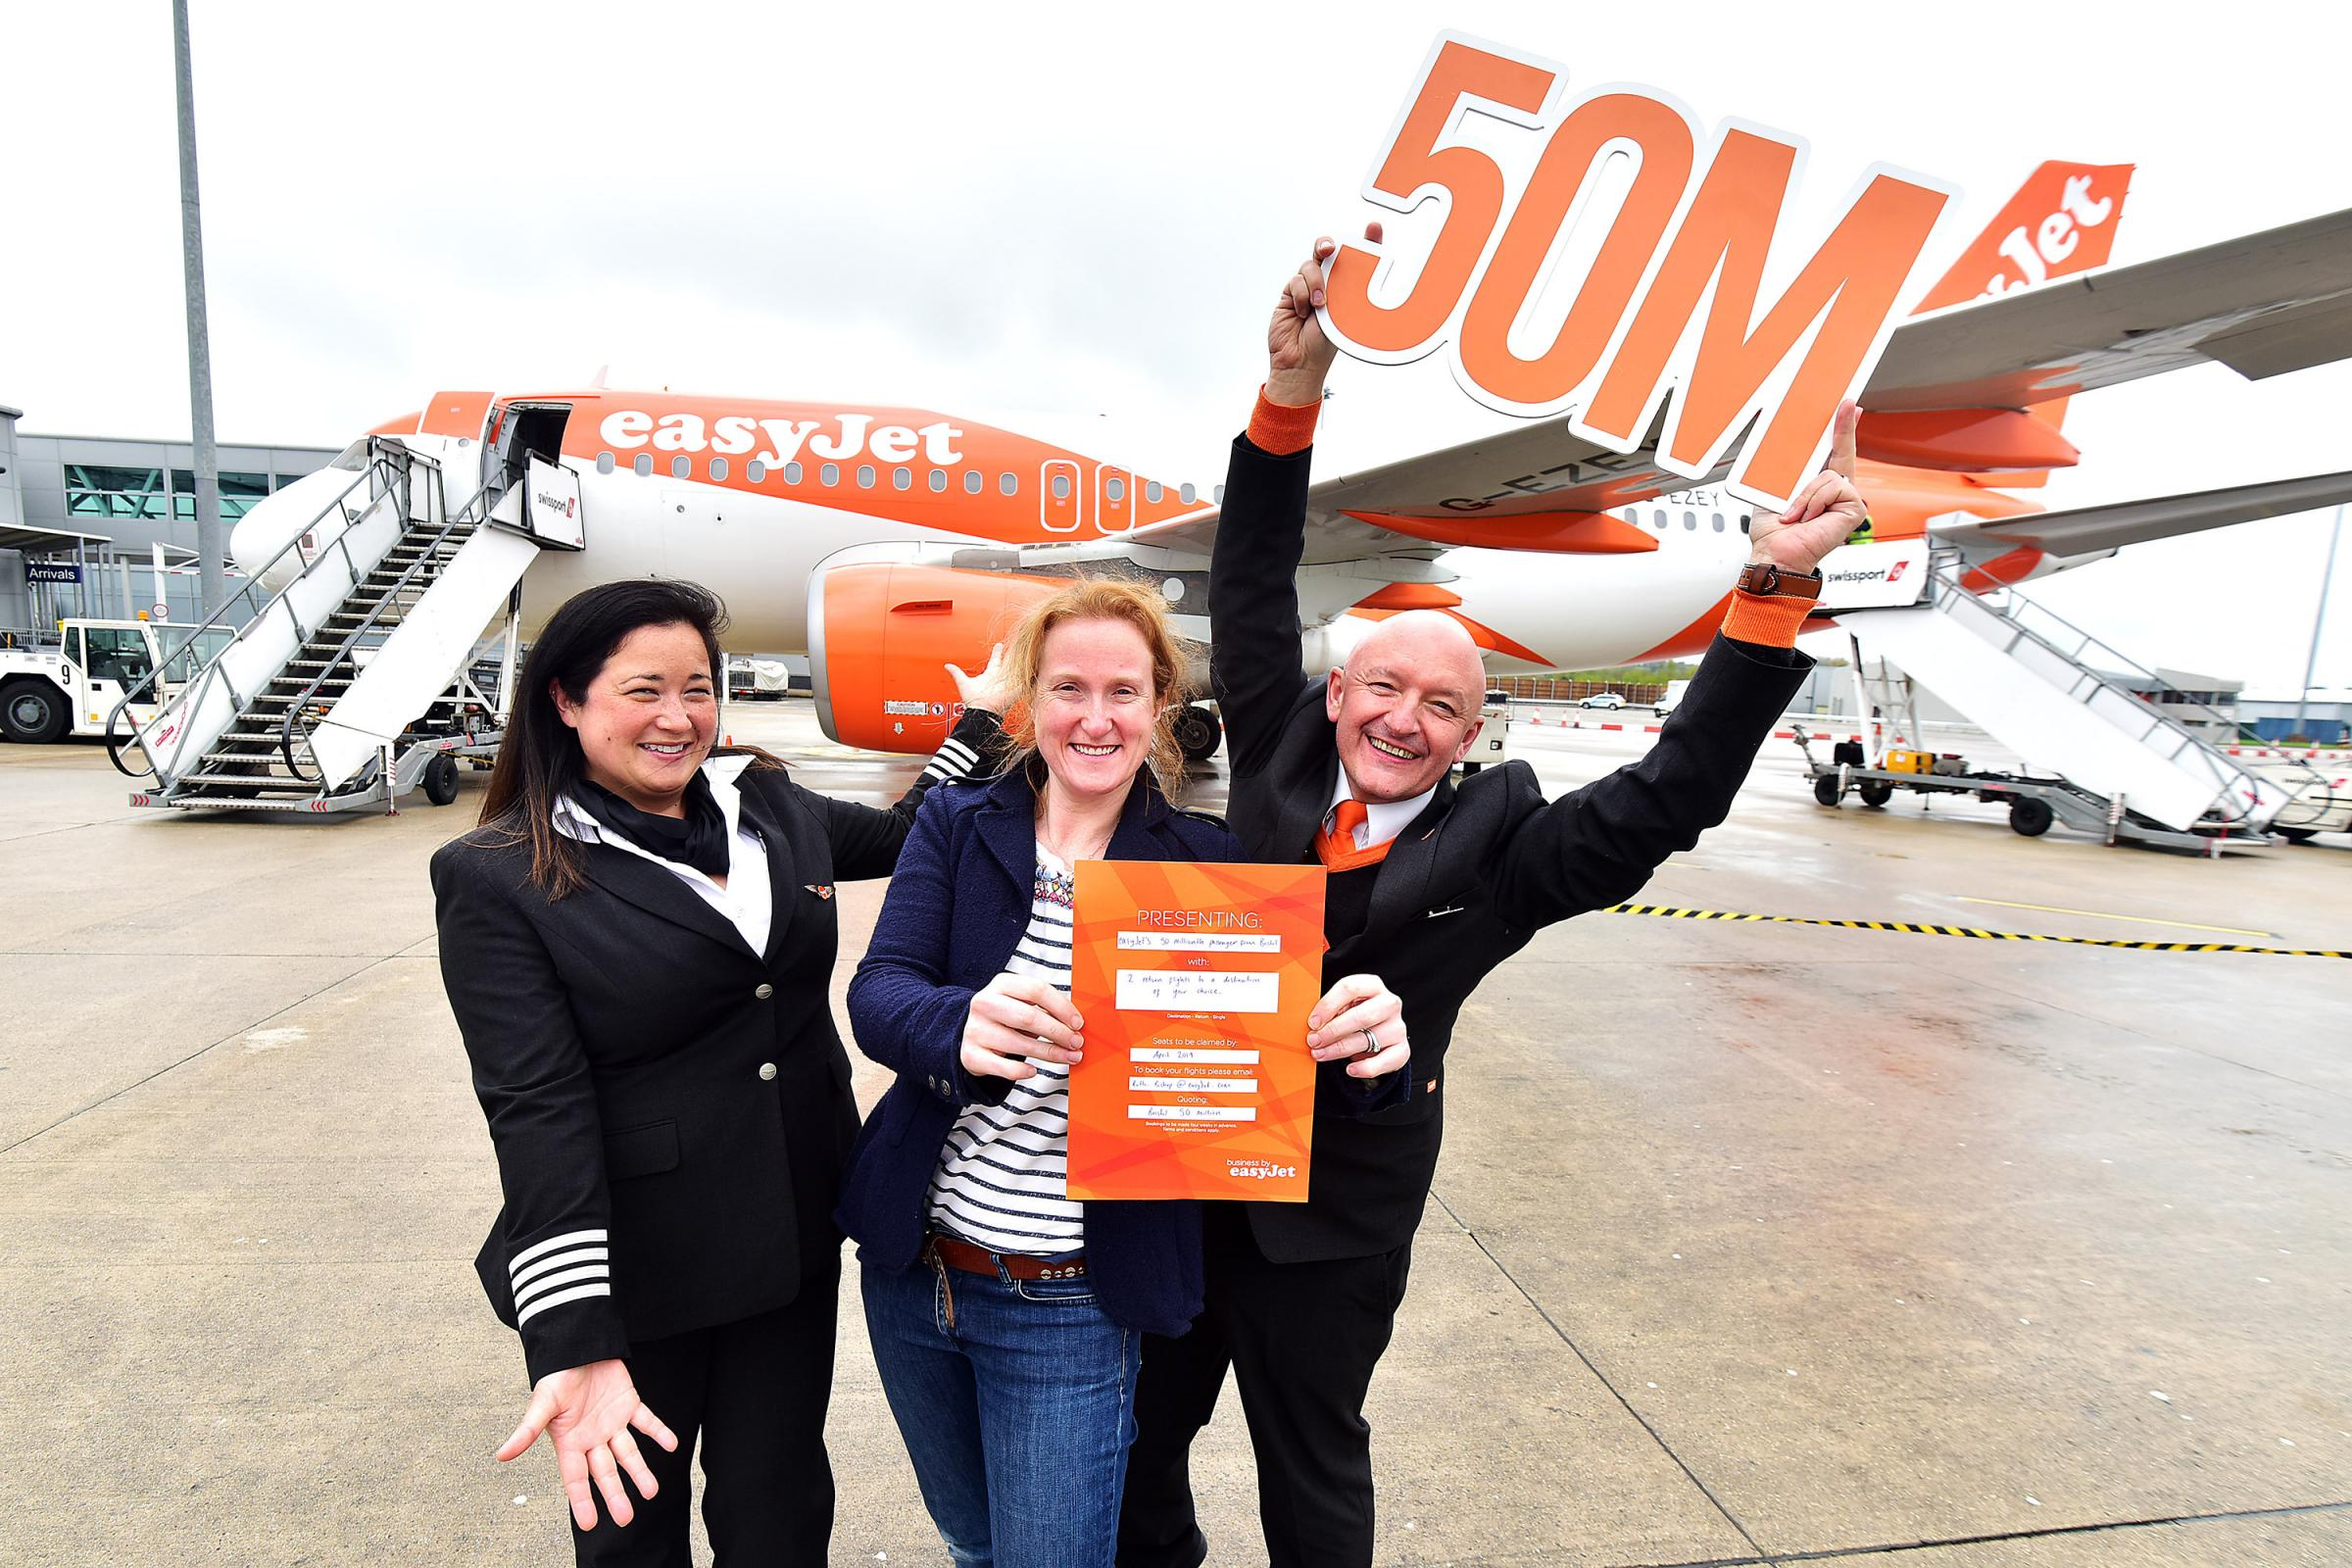 easyJet celebrates carrying 50 million passengers from Bristol Airport